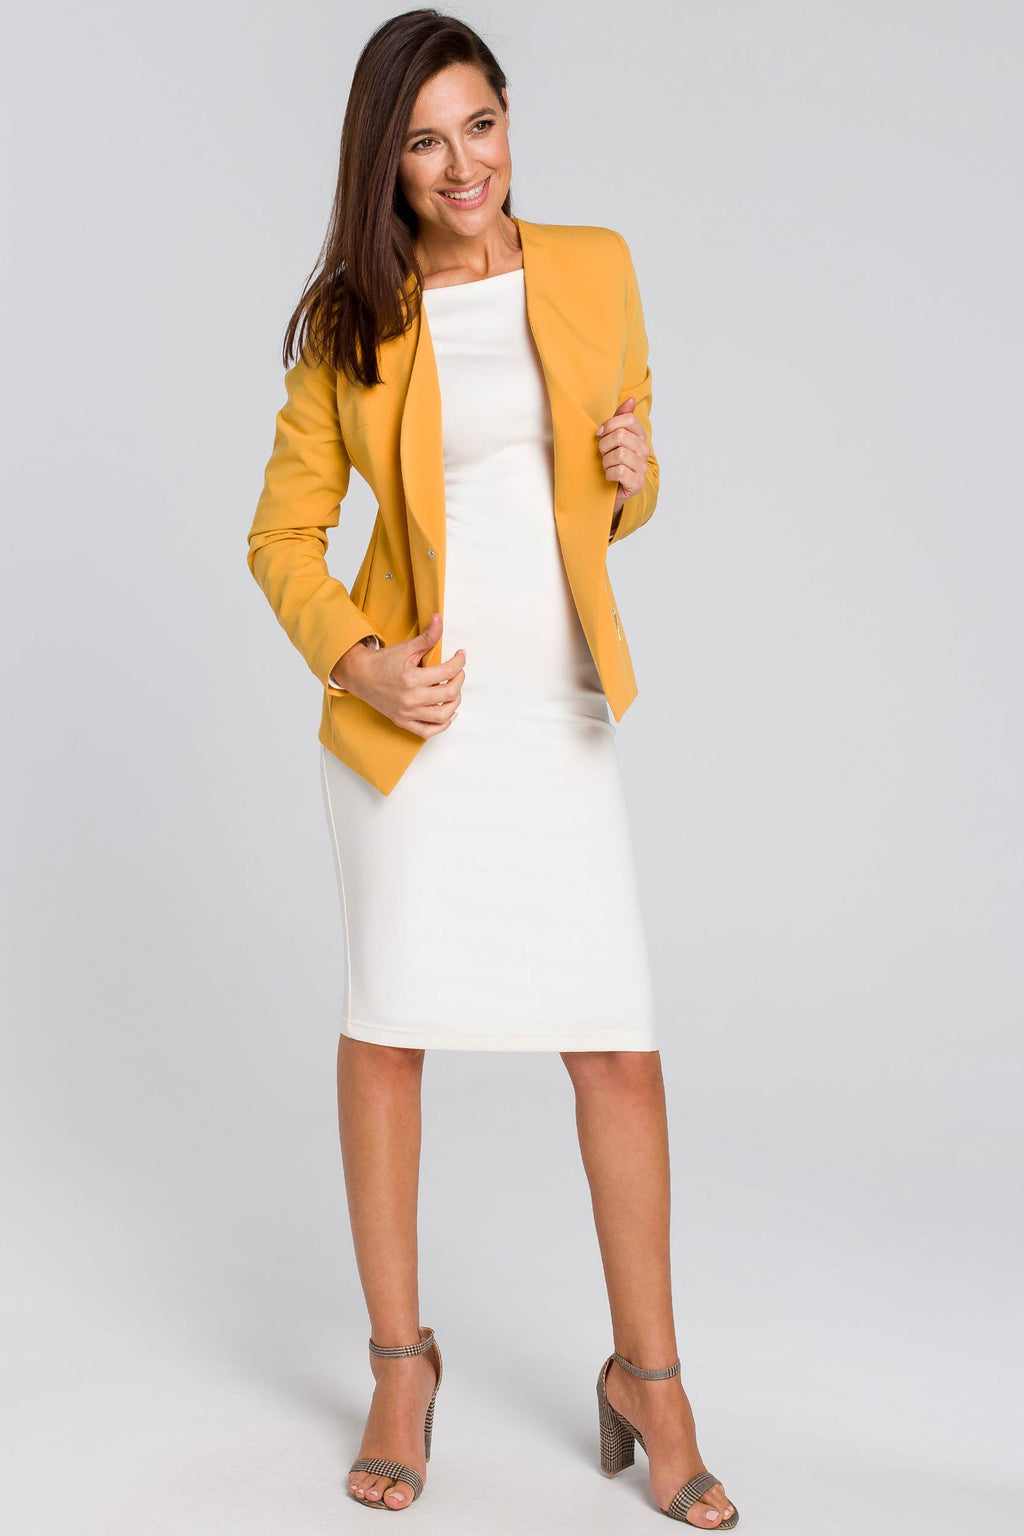 Yellow Tailored Blazer With Zips - So Chic Boutique